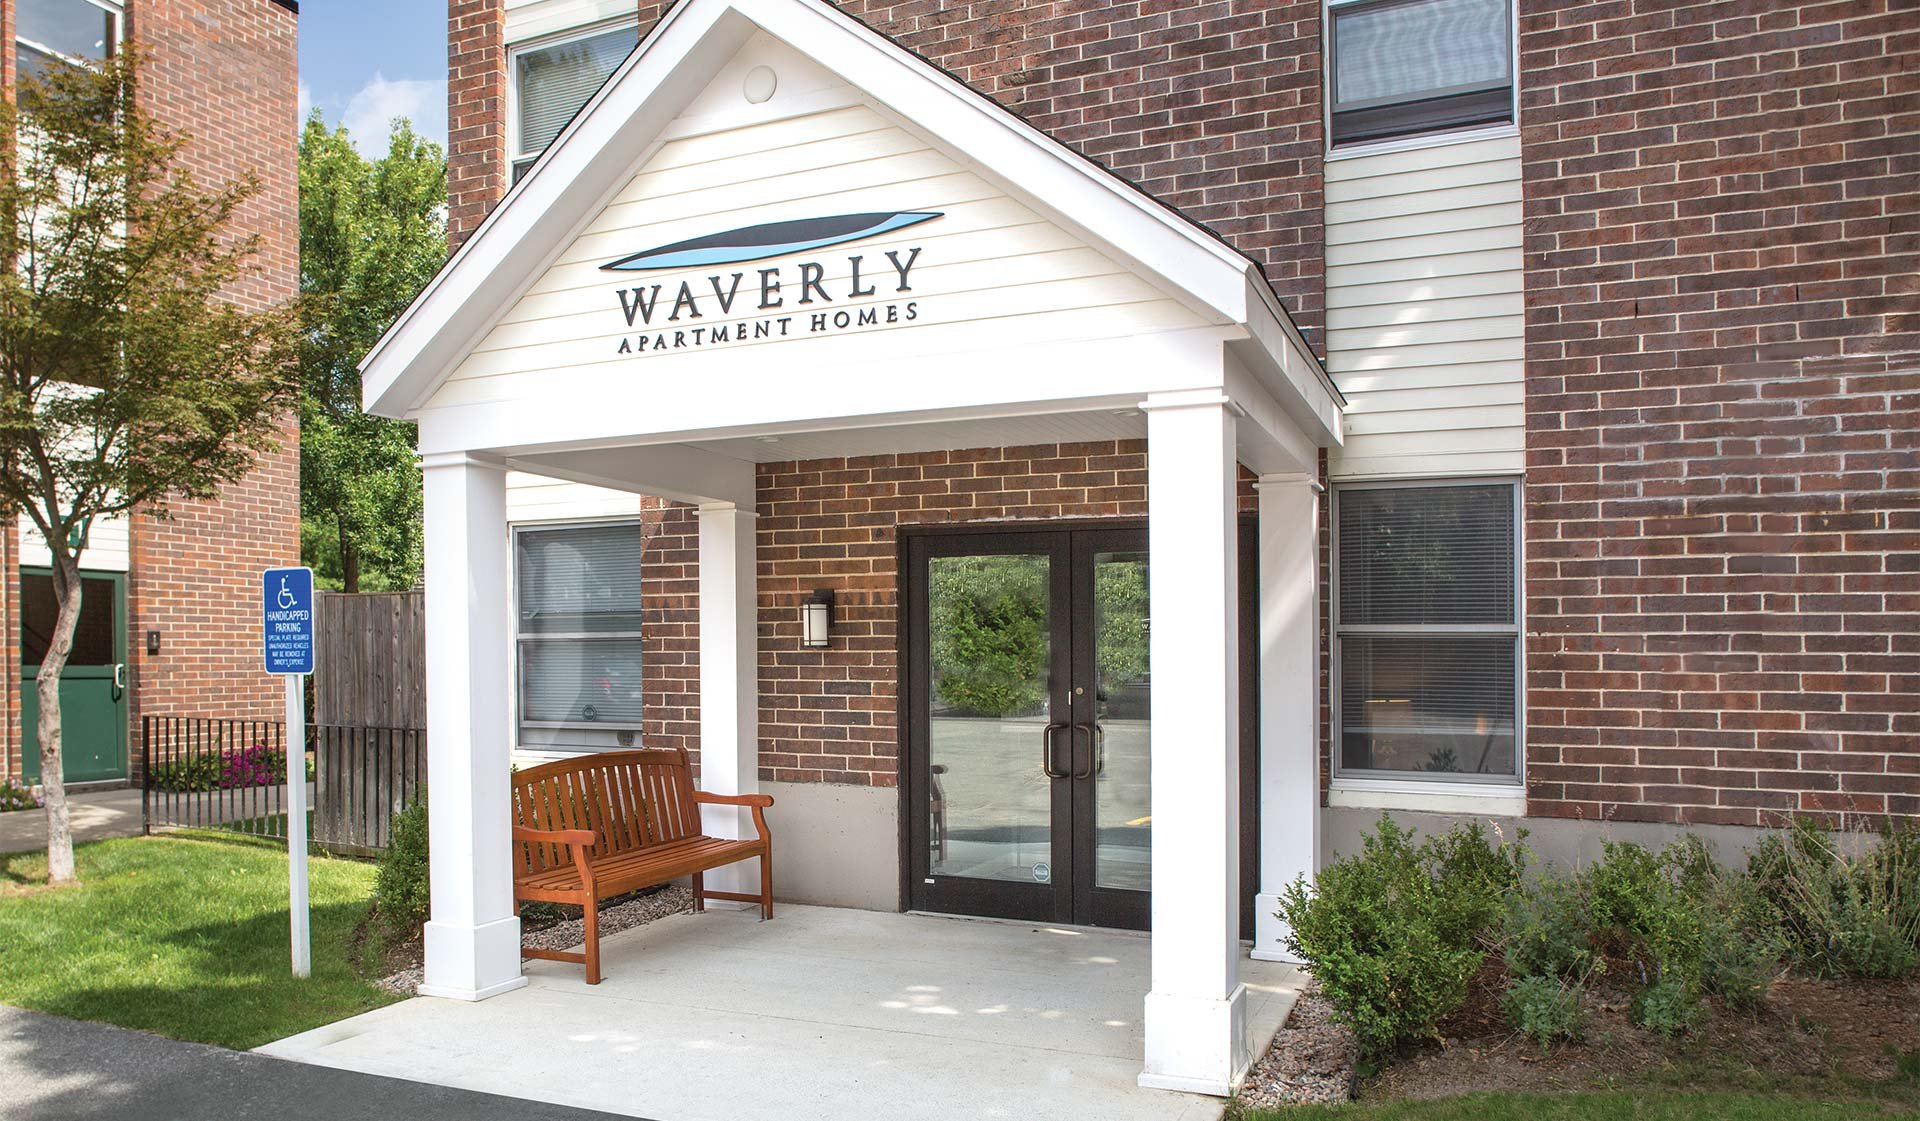 Waverly Apartments - controlled access